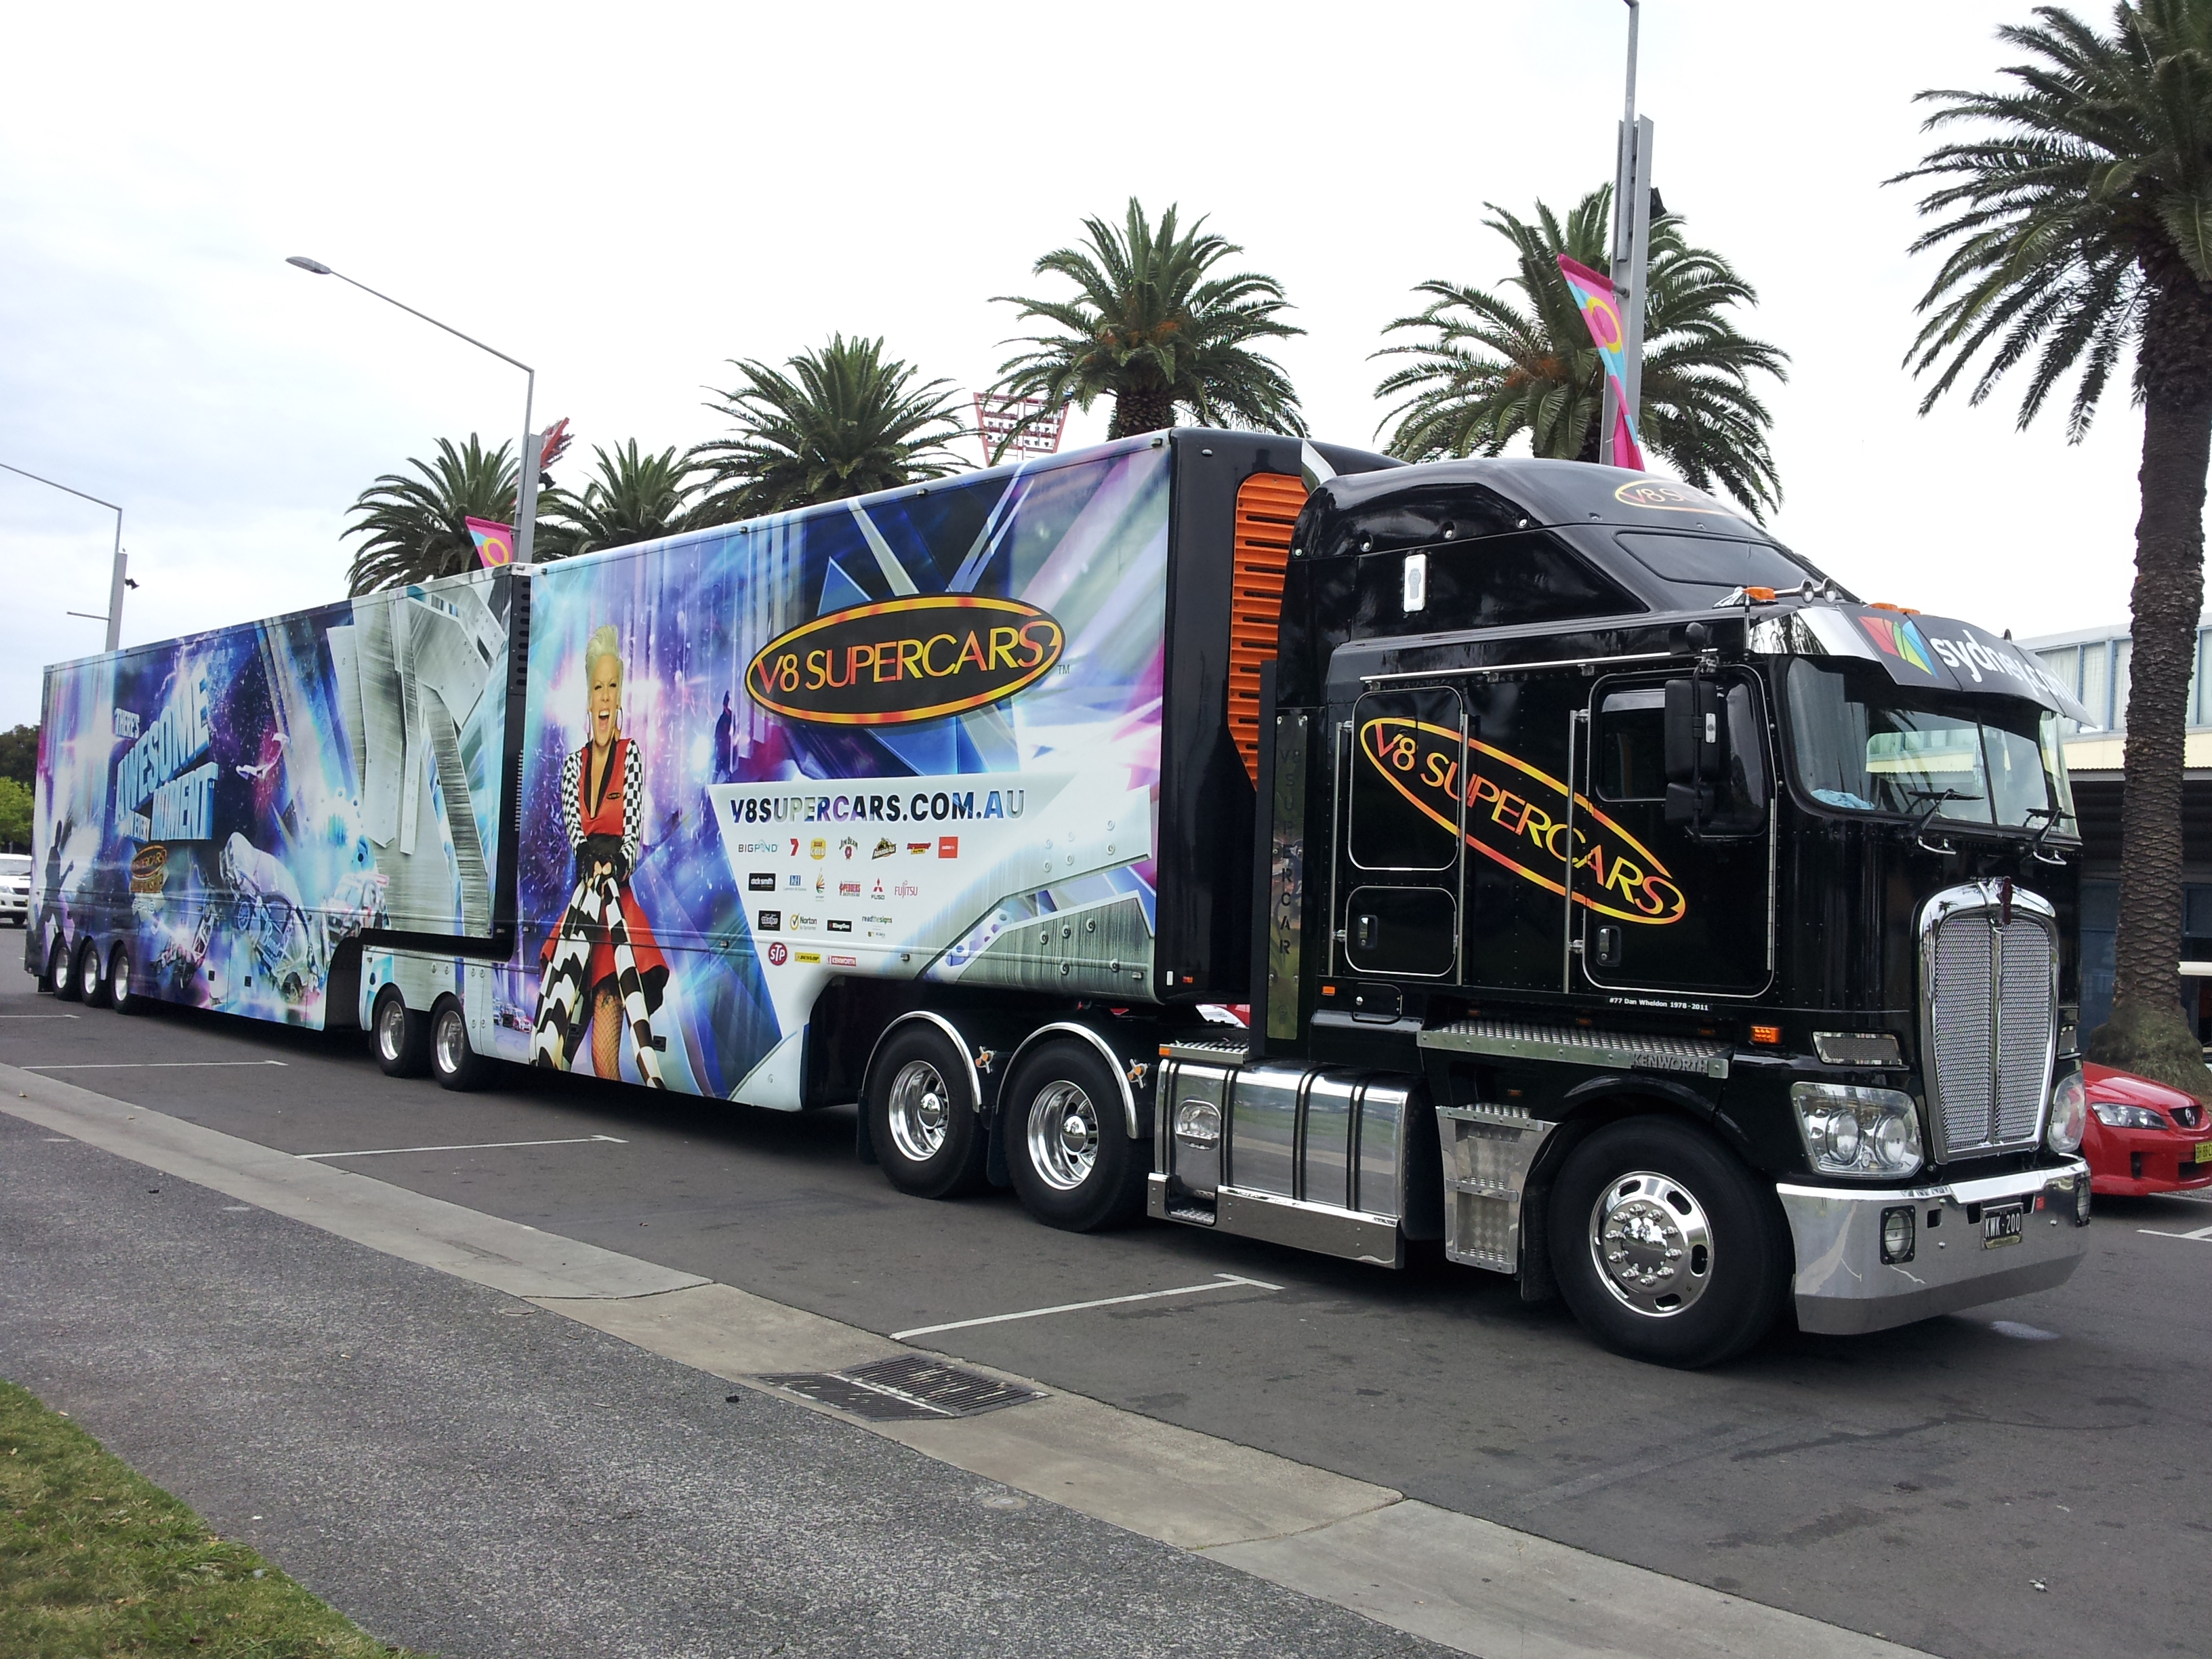 Ford Work Trucks File:V8 Supercars truck, 30 November 2011.jpg - Wikimedia ...